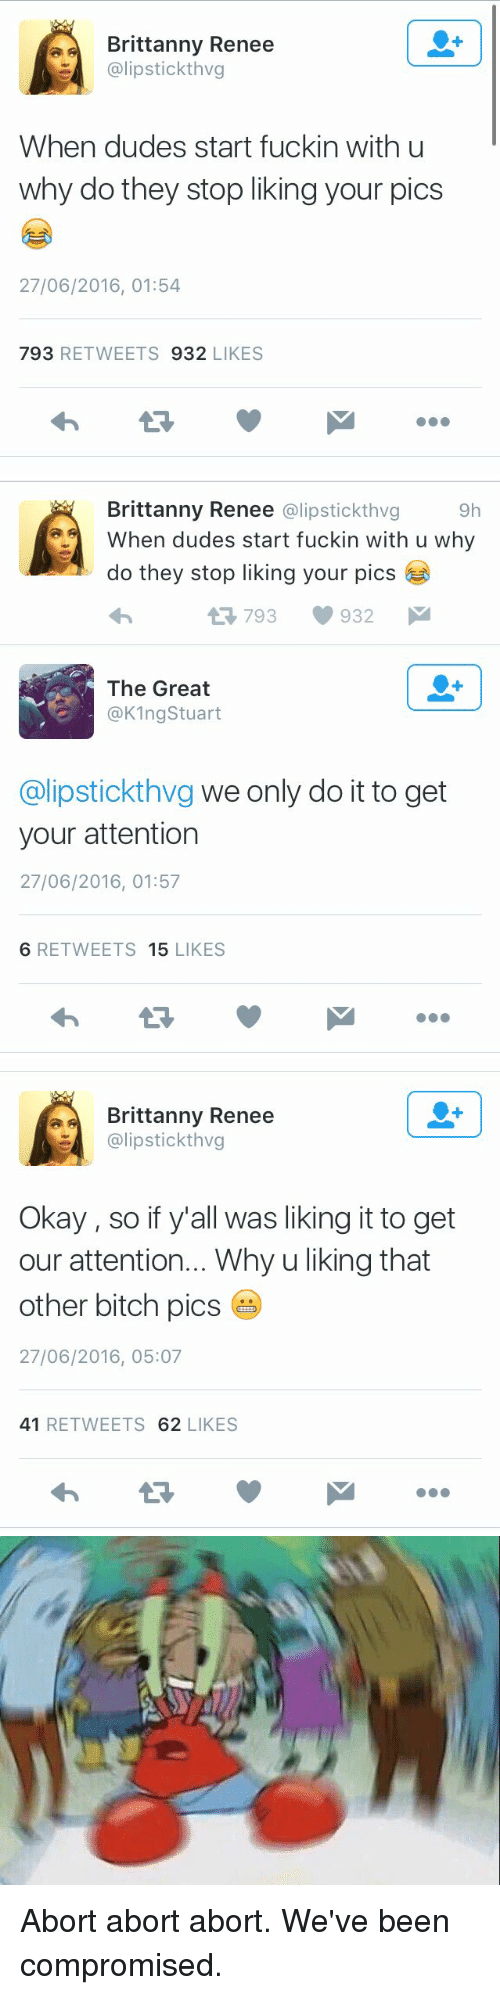 Bitch, Dude, and Xxx: a A Brittanny Renee  alipstickthvg  When dudes start fuckin with u  why do they stop liking your pics  27/06/2016, 01:54  793  REE TWEETS 932  LIKES   9h  Brittanny Renee  @lipstick thvg  When dudes start fuckin with u why  do they stop liking your pics  tR 793 932  M  The Great  @K1ng Stuart  alipstickthvg we only do it to get  your attention  27/06/2016, 01:57  6 RETWEETS  15  LIKES   Brittanny Renee  @lipstick thvg  Okay, so if y'all was liking it to get  our attention... Whyuliking that  other bitch pics  27/06/2016, 05:07  41  RETWEETS  62  LIKES Abort abort abort. We've been compromised.